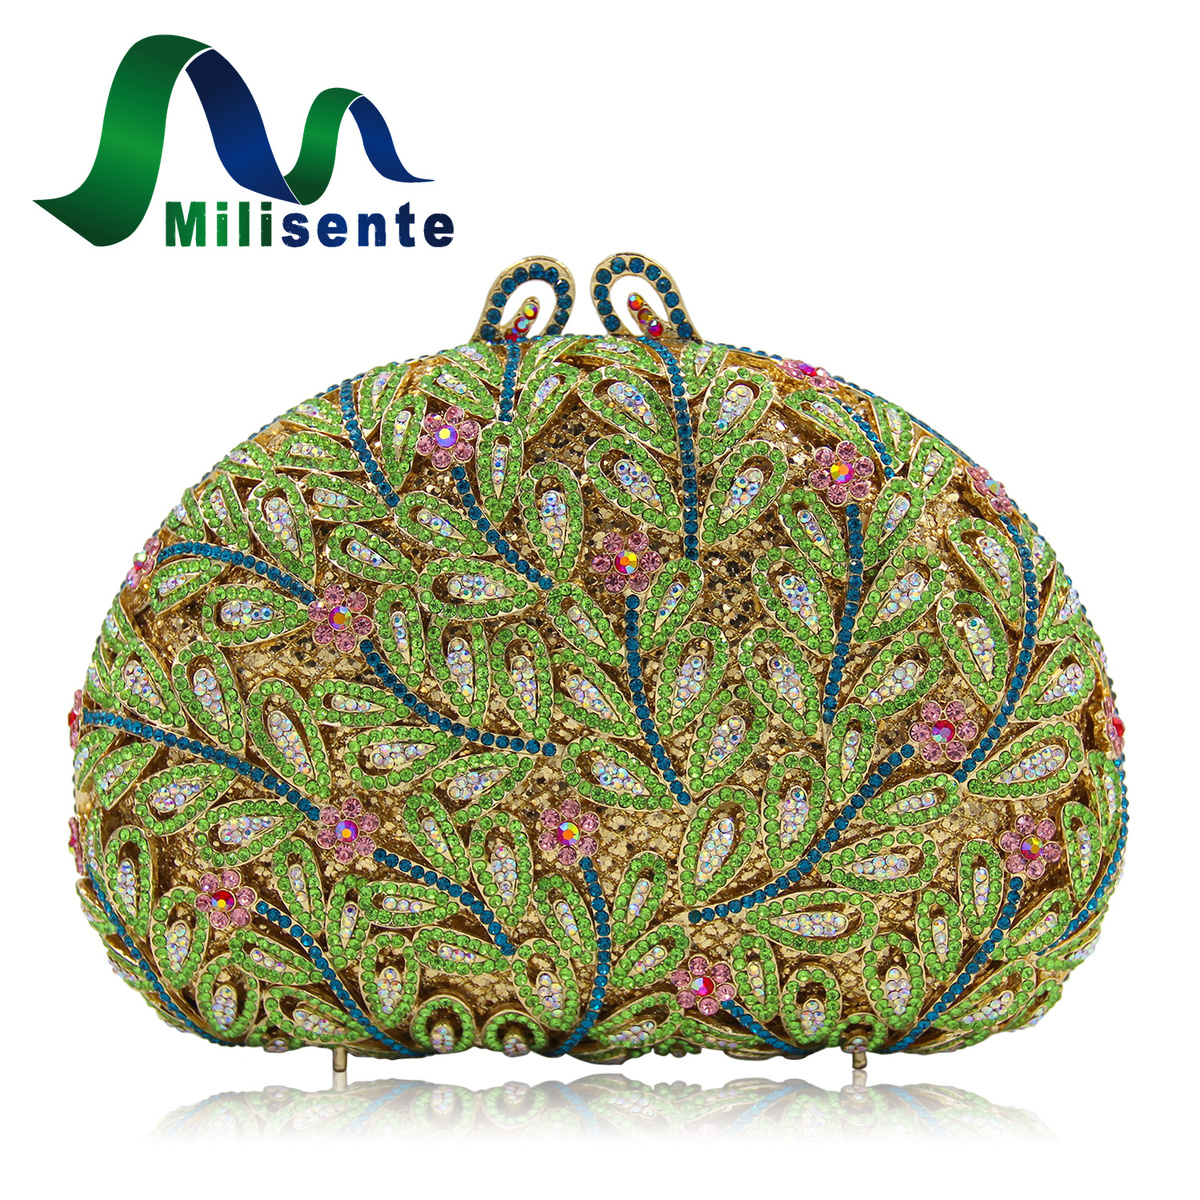 Milisente Vintage Women Floral Evening Clutch Green Ladies Colorful Crystal Clutches Purses Female Beauty Party Bag milisente high quality luxury crystal evening bag women wedding purses lady party clutch handbag green blue gold white